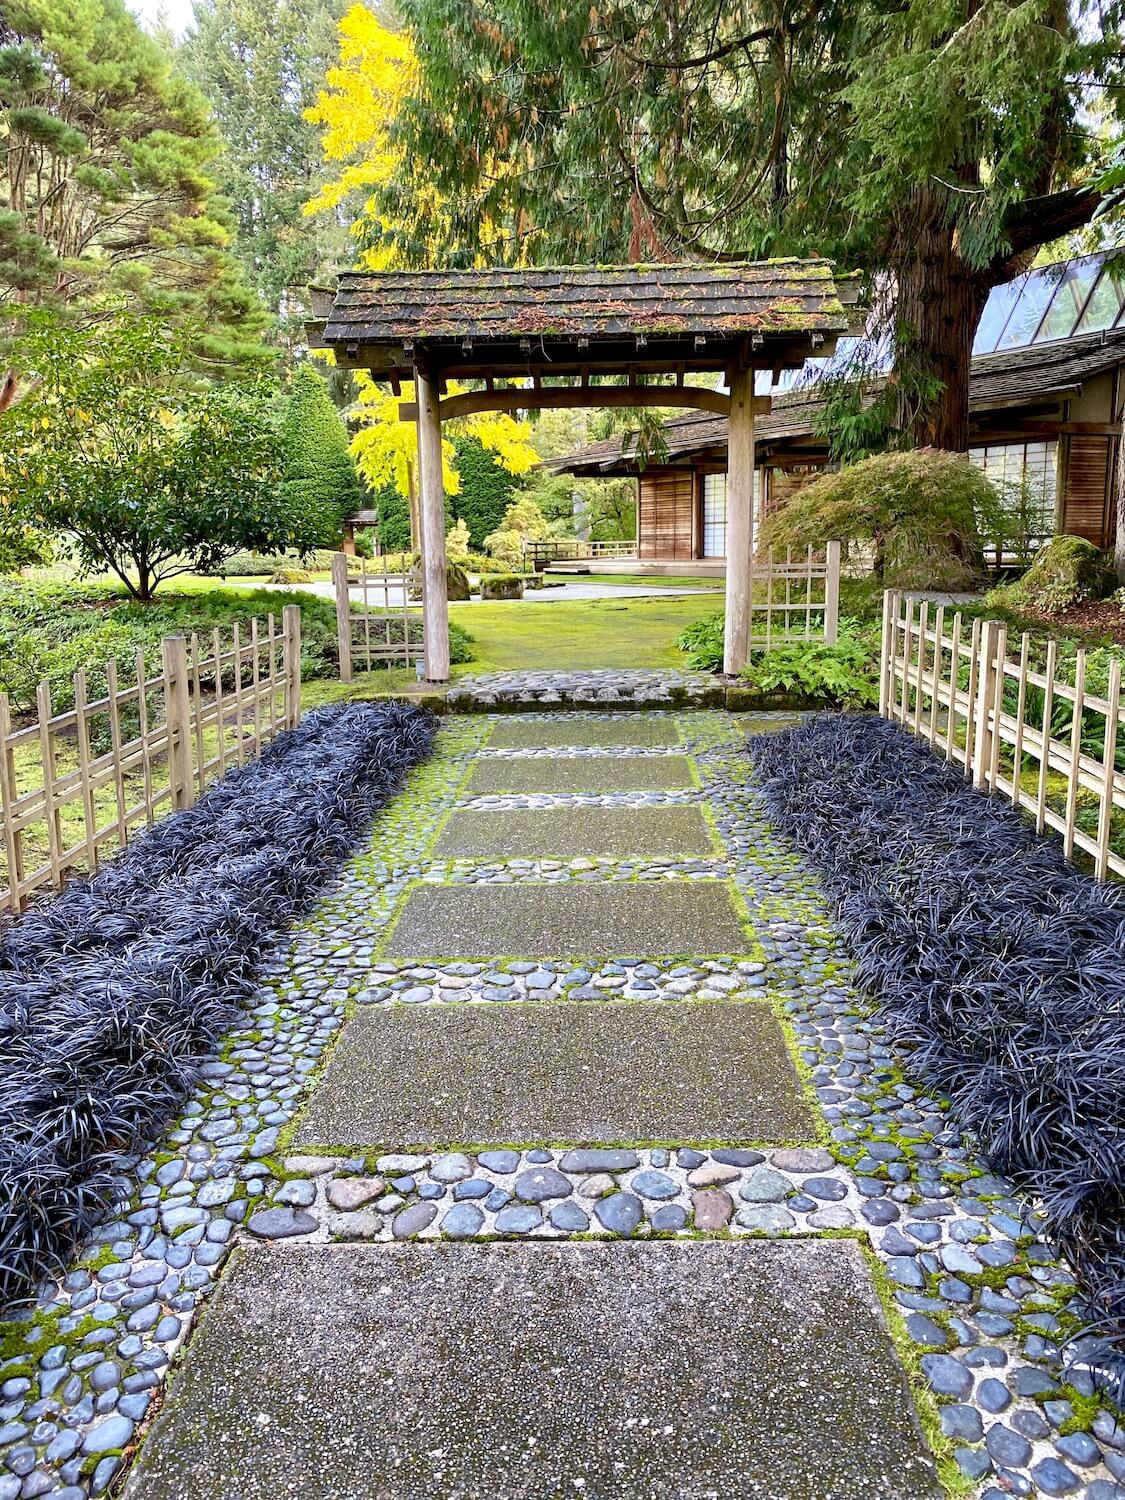 An ornate entrance to the Japanese Garden and Guest House at Bloedel Reserve. The wooden archway is followed by intricate bamboo lattice fence that is surrounded by blackish purple grasses. The path is a mixture of rocks and concrete pavement.